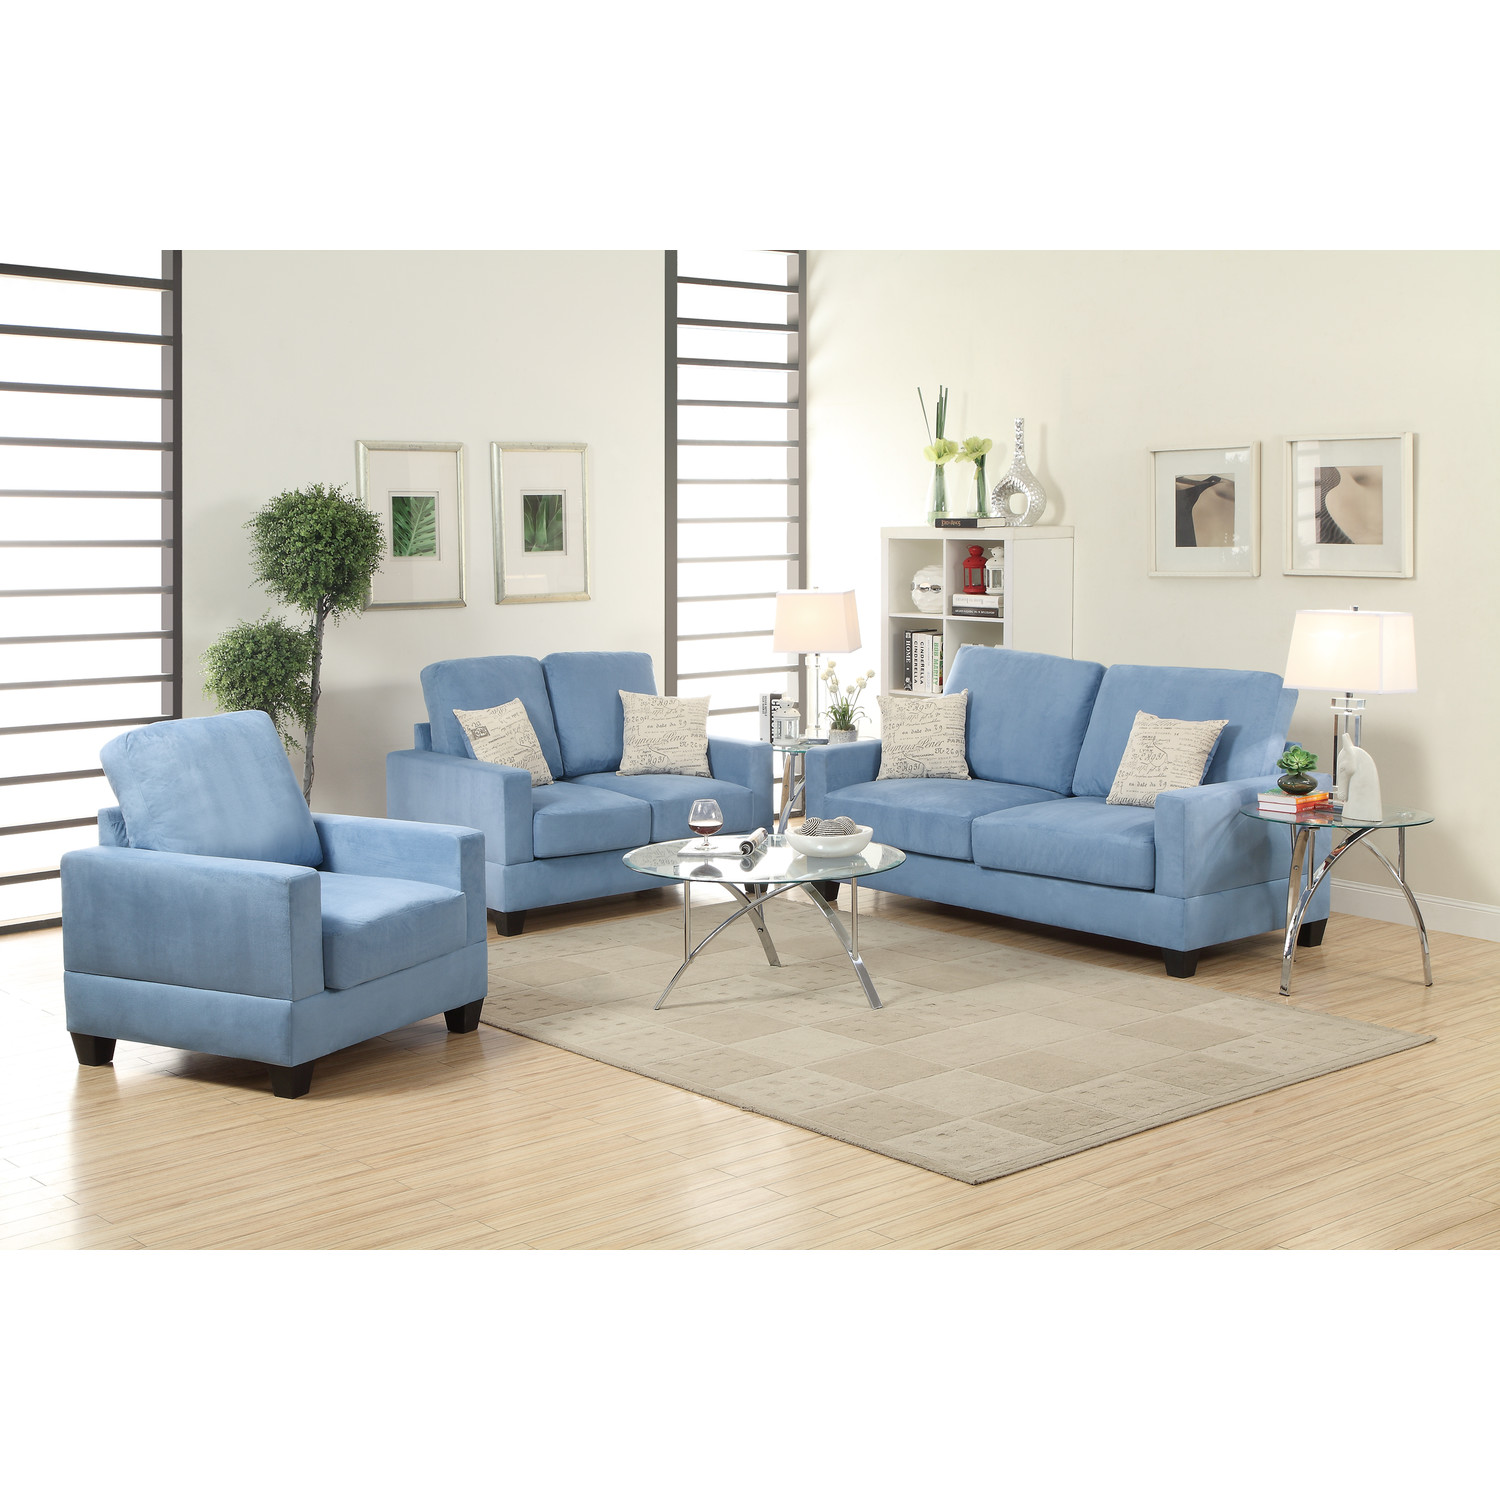 Blue Sectional Sofas And White Pillows Glass Table In The Middle Brown Carpet Simple L&s · Brown Apartment Size ...  sc 1 st  HomesFeed : small apartment size sectionals - Sectionals, Sofas & Couches